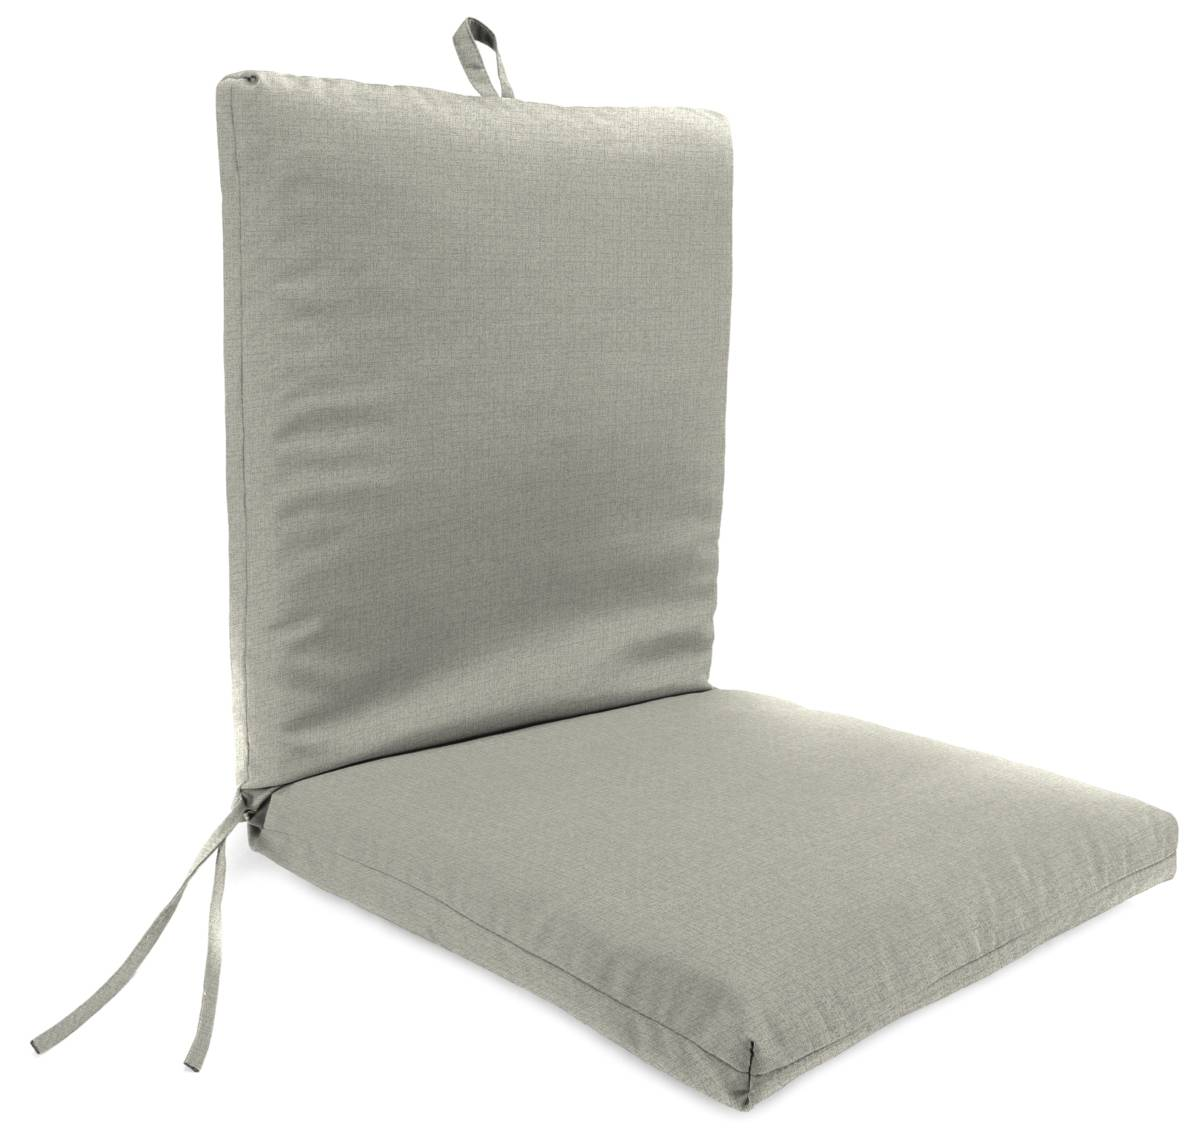 Jordan Manufacturing 9701PK1-5514D Outdoor French Edge Dining Chair Cushion, Husk Texture Stone